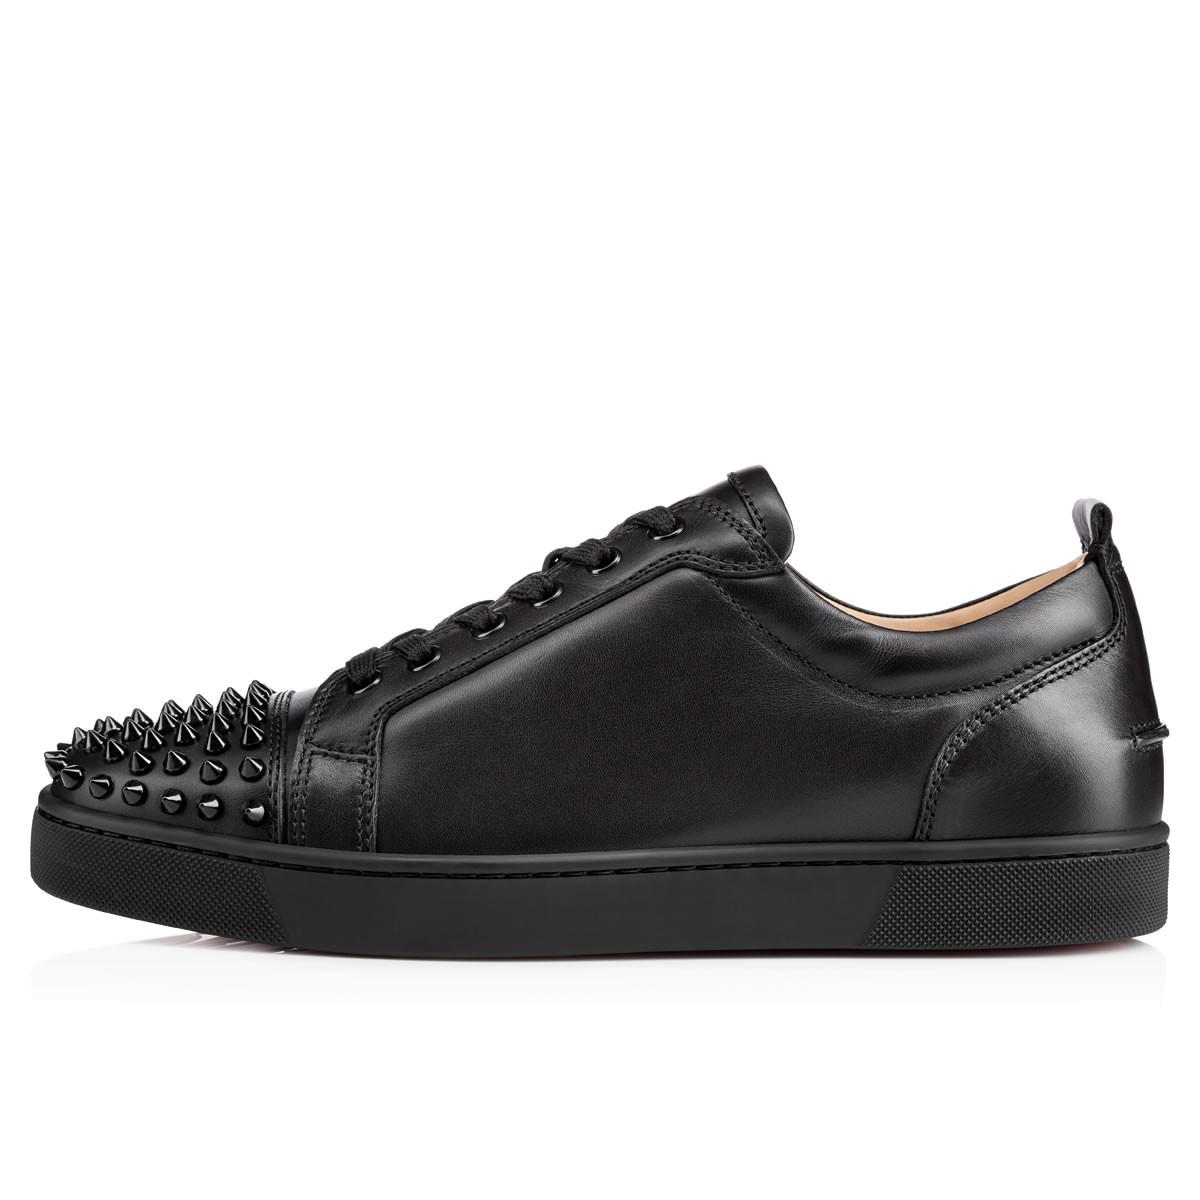 lyst christian louboutin louis junior spikes leather sneakers in rh lyst com